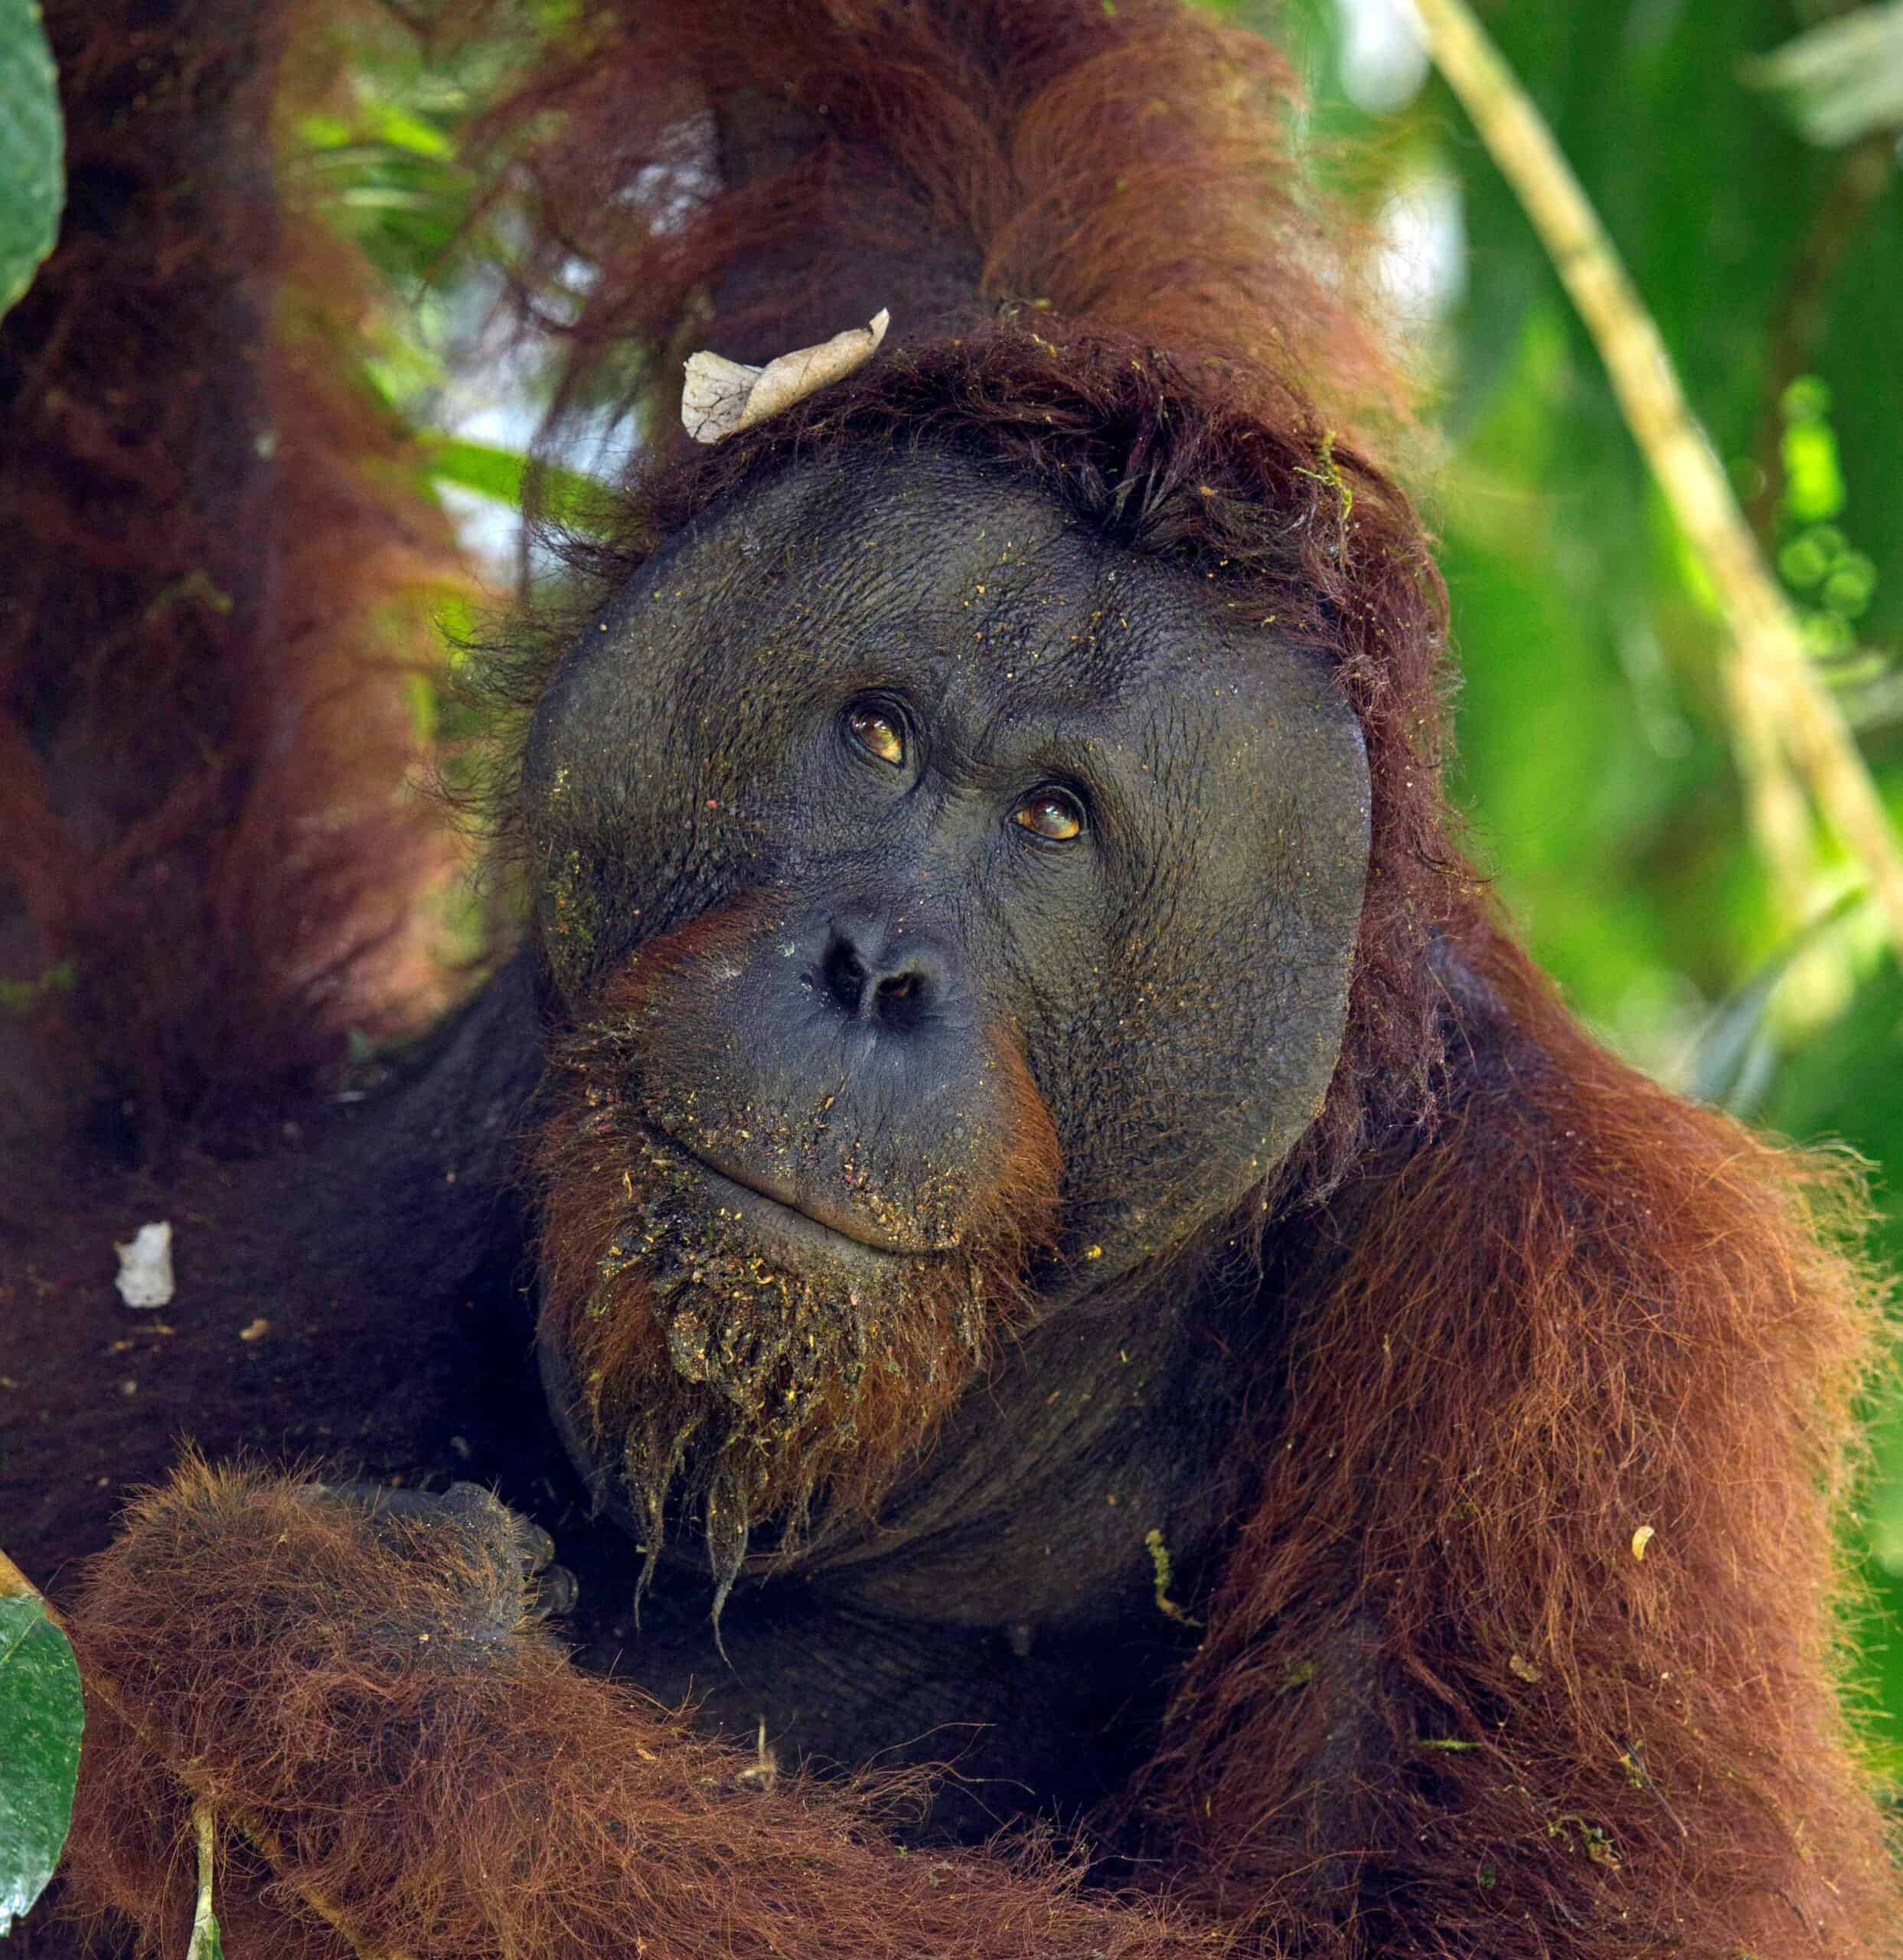 Borneo is one of the only places to see wild orangutans. © Charles Ryan